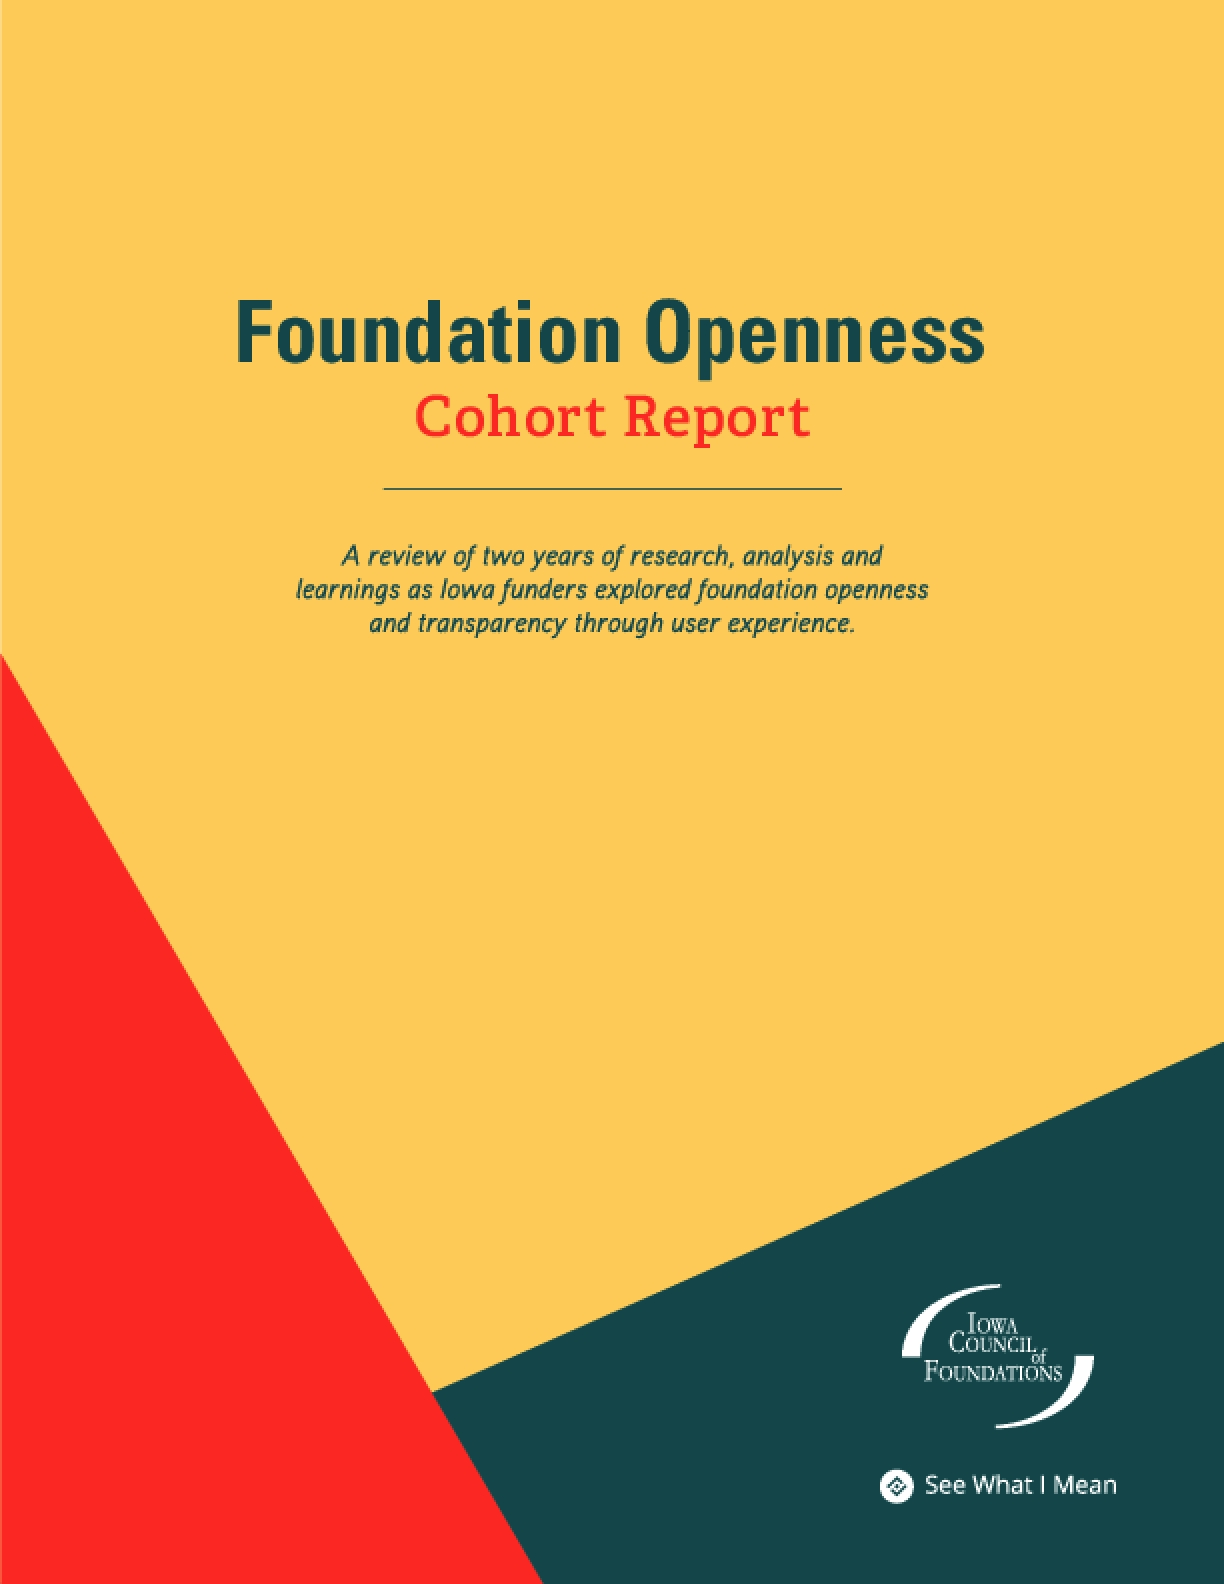 Foundation Openness Cohort Report